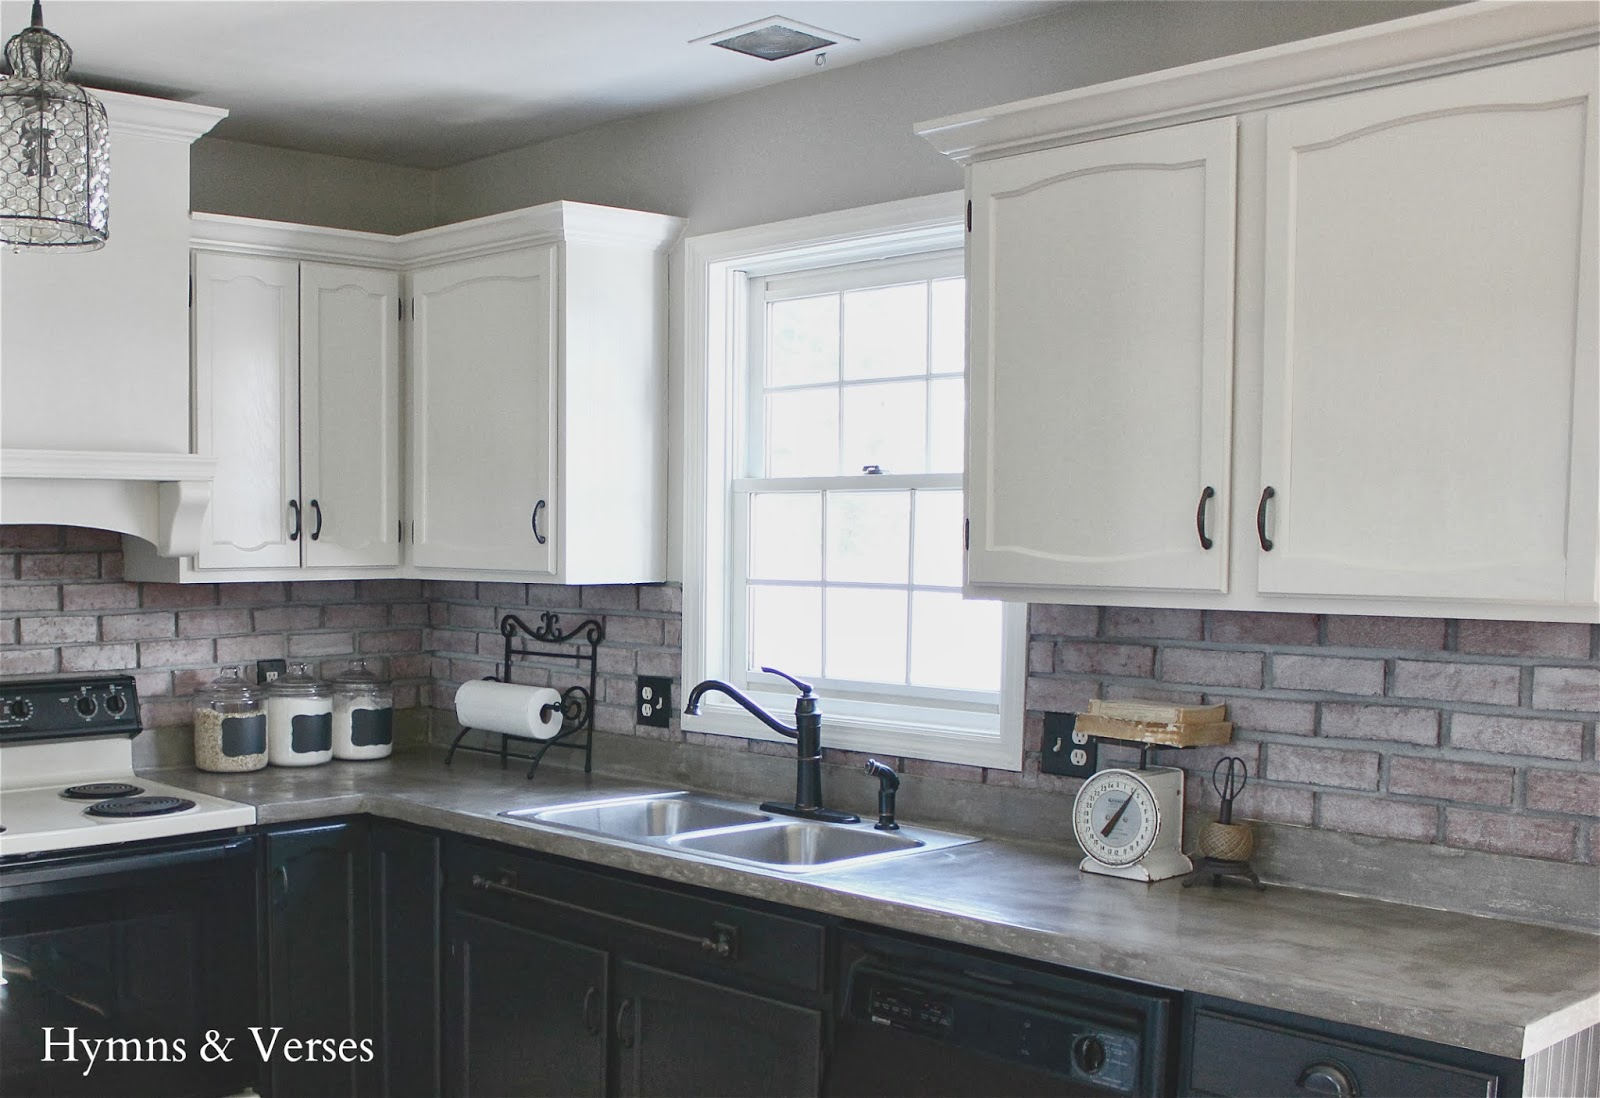 Grey Kitchen Cabinets With Black Countertops The diy concrete